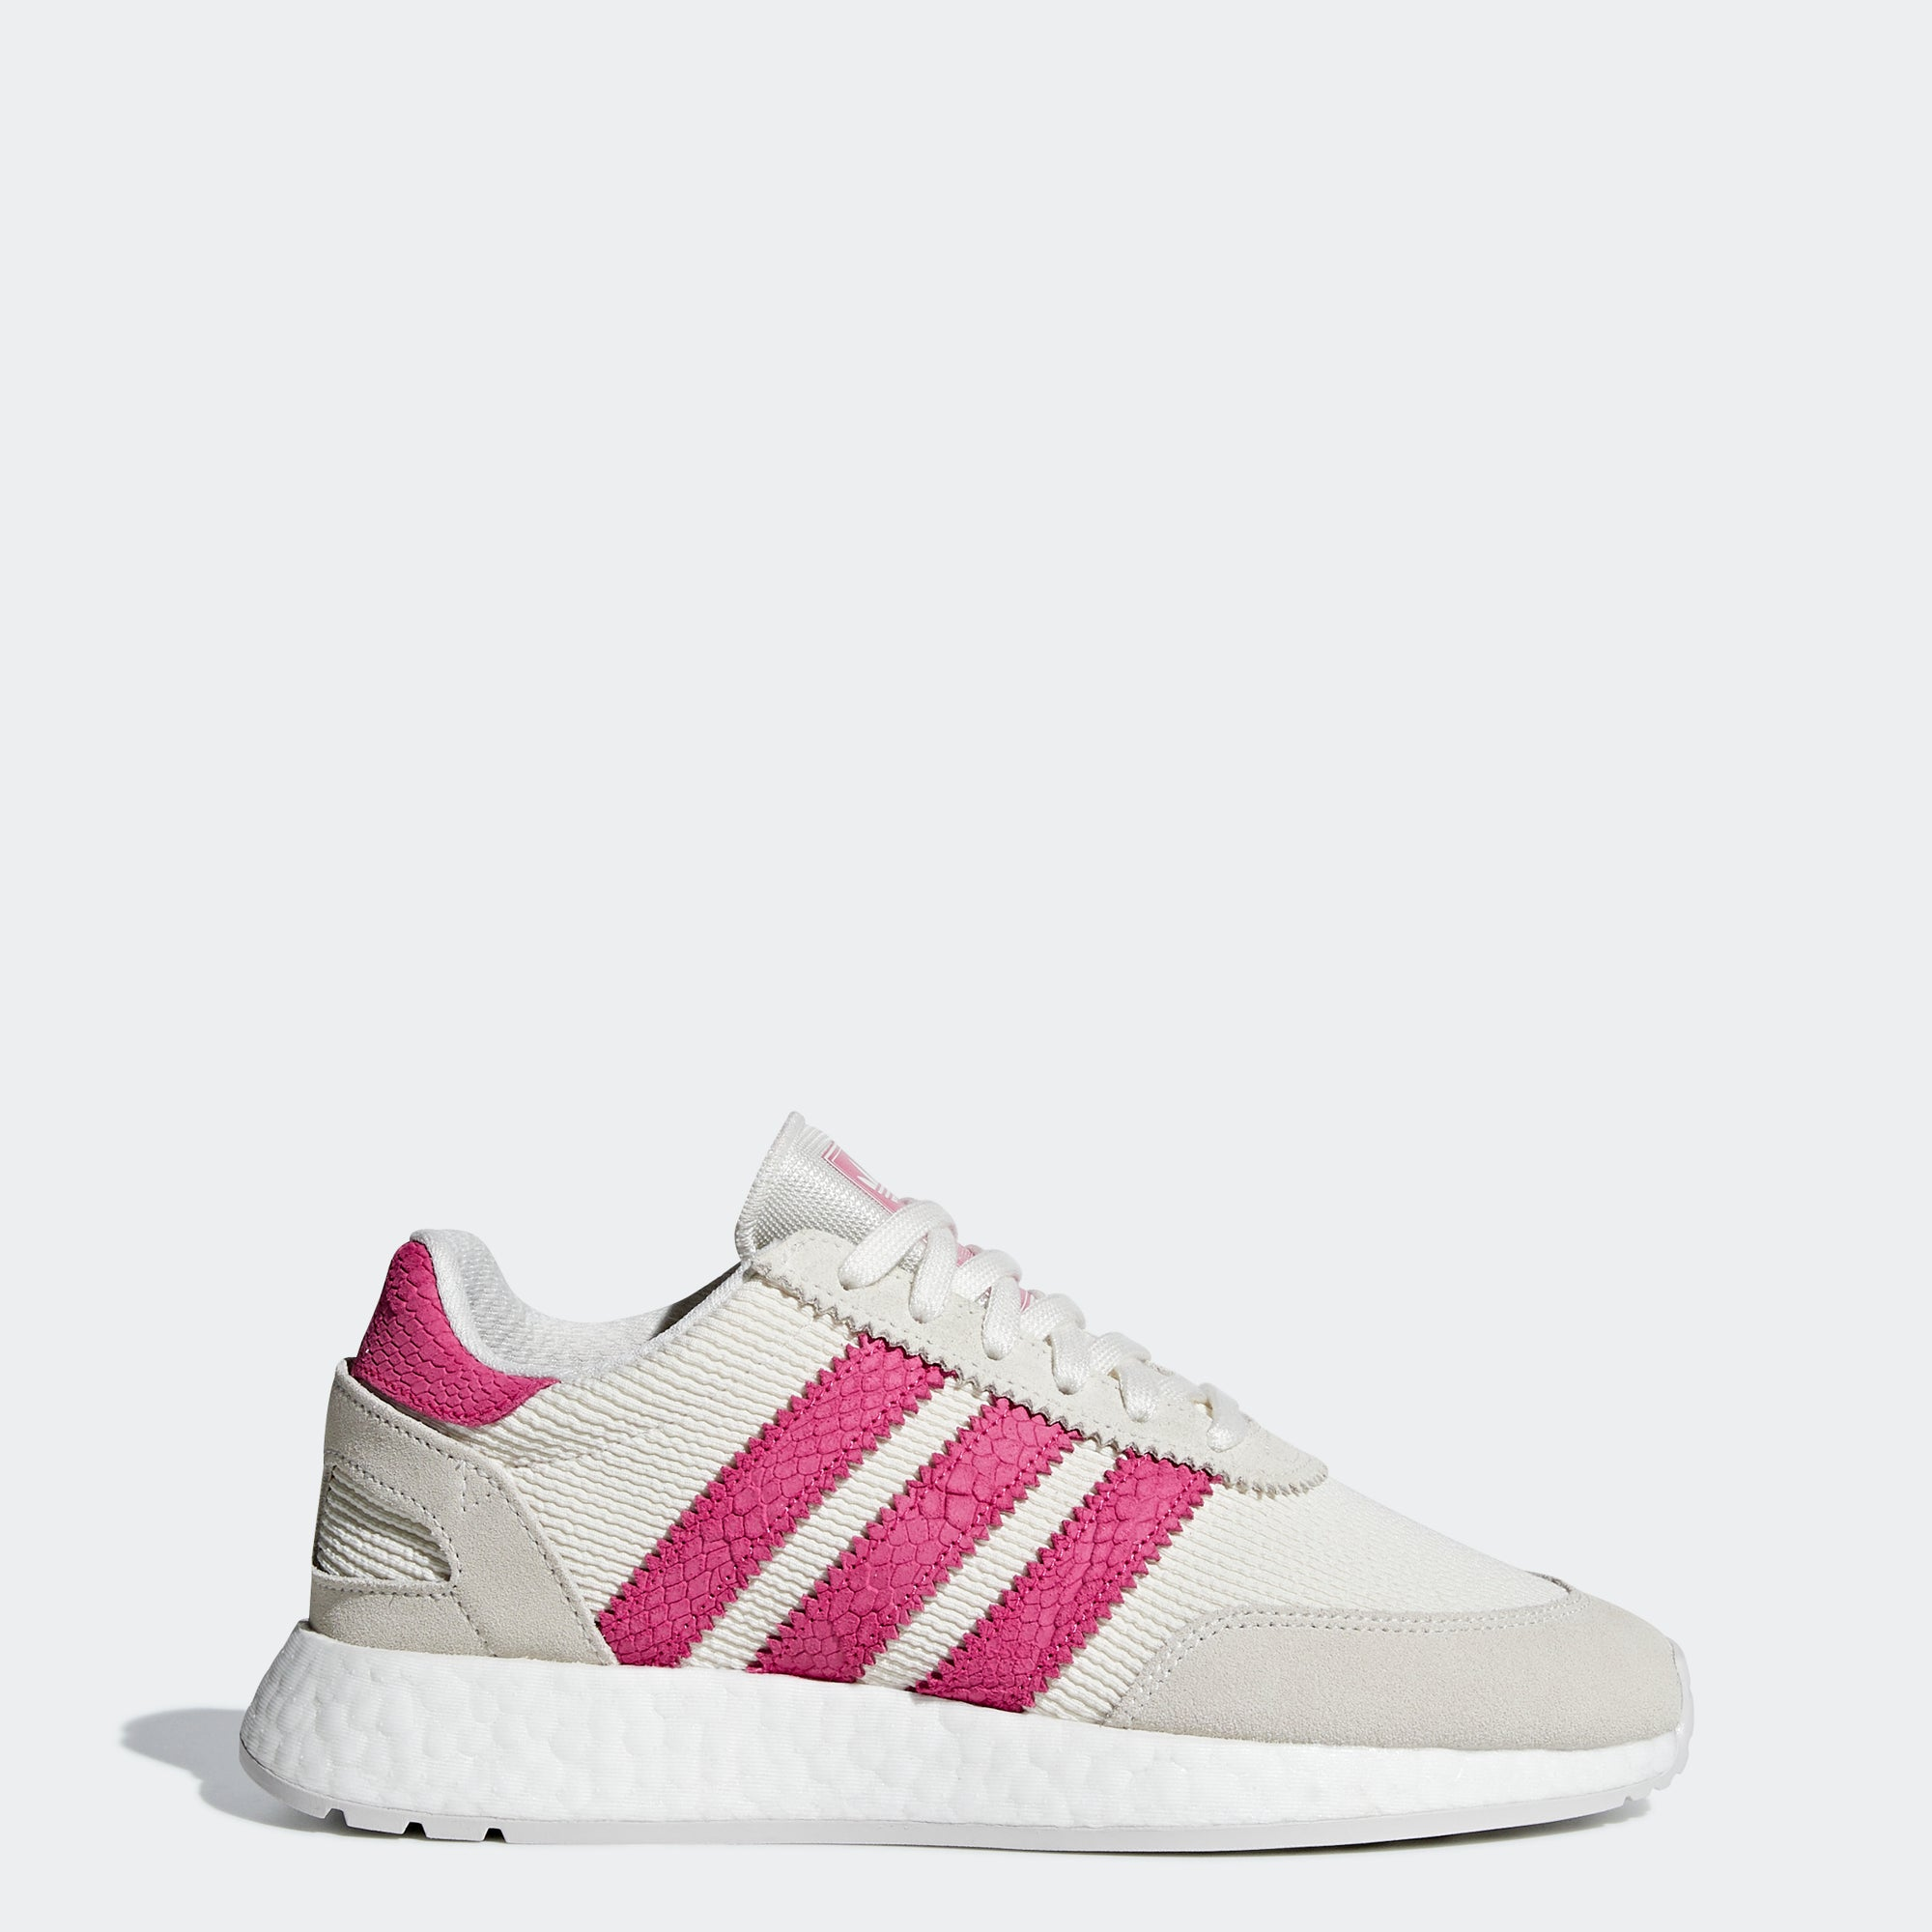 huge discount afc2f 37a02 Women s adidas Originals I-5923 Shoes Off White Pink